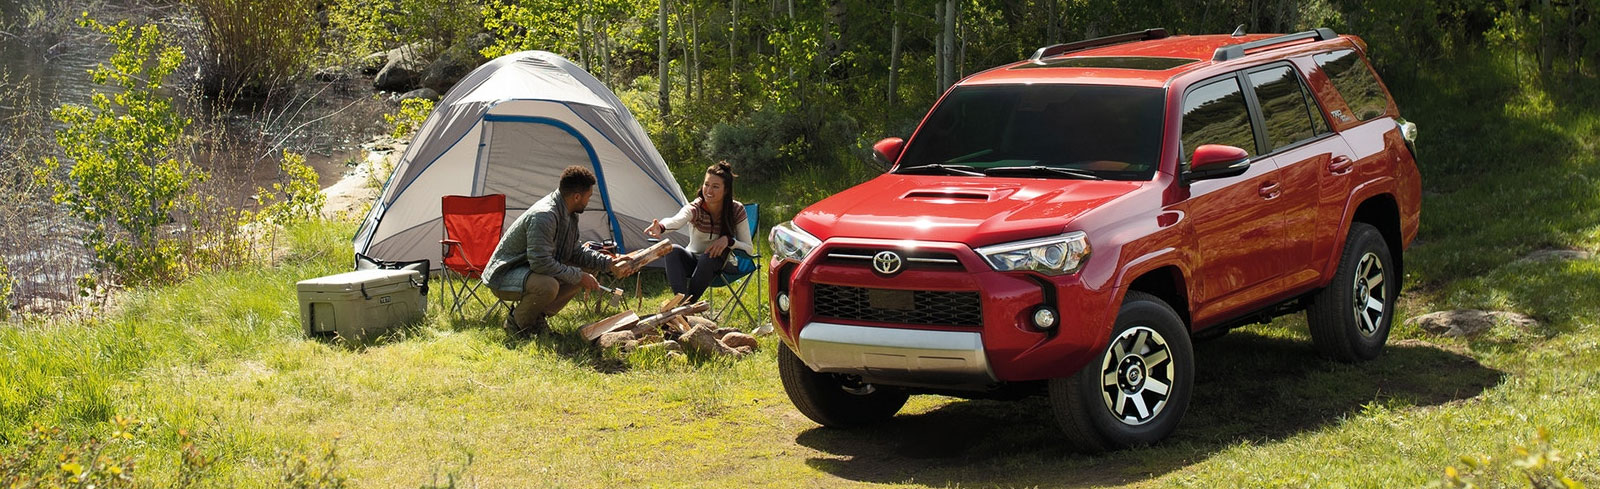 All New 2020 Toyota 4Runner for Sale at Future Toyota of Yuba City